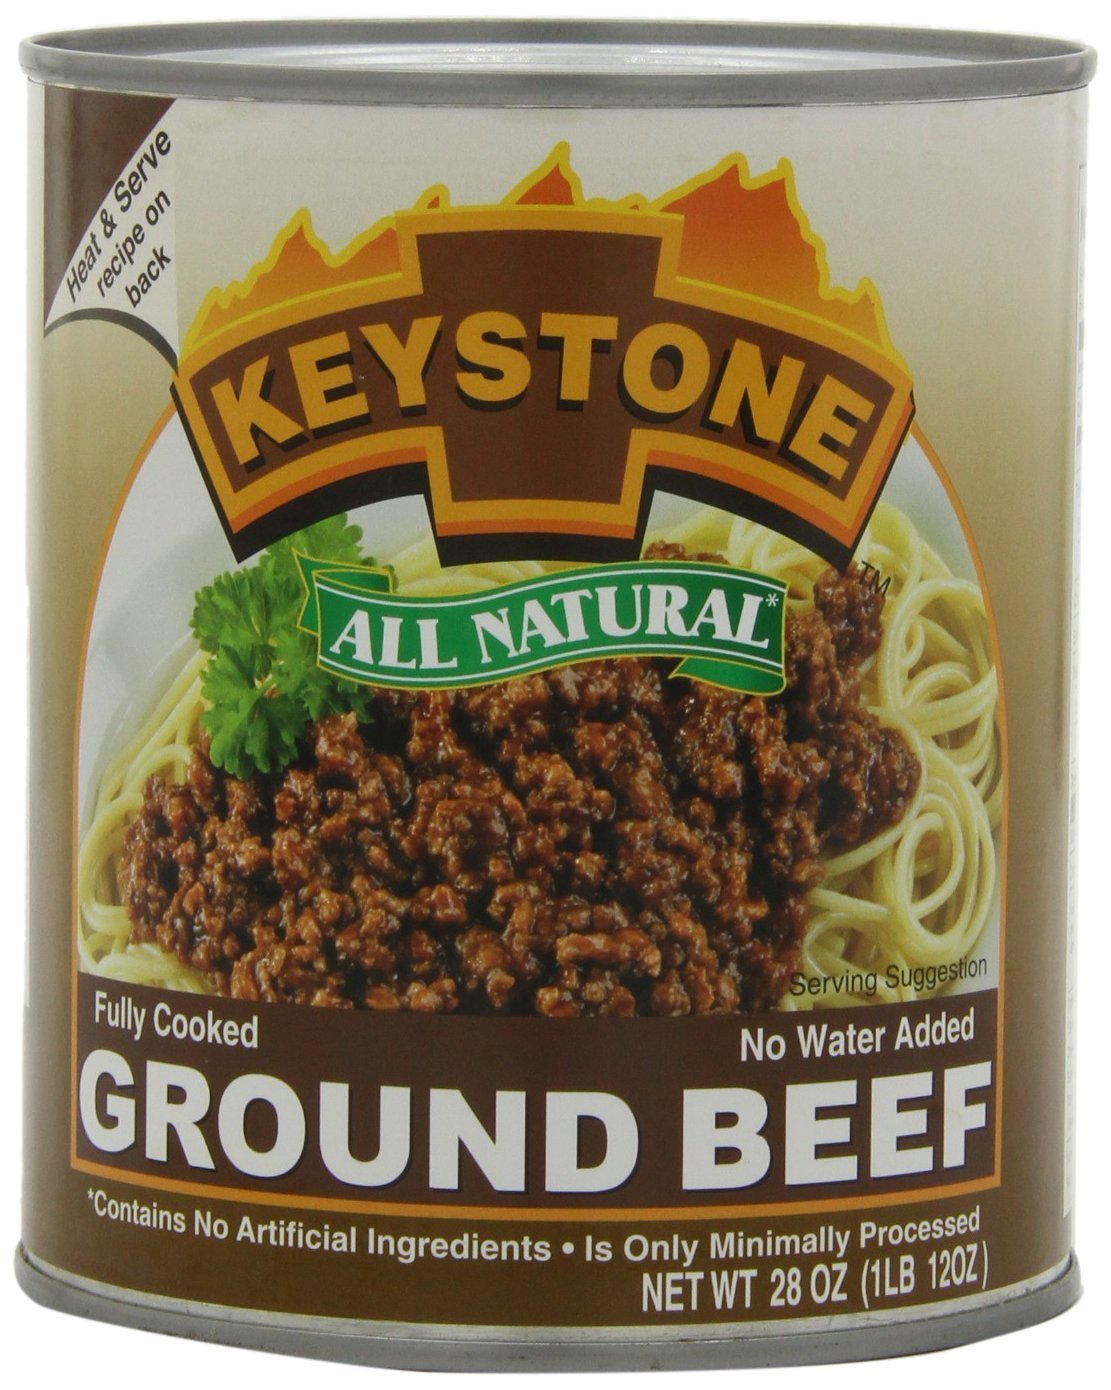 Keystone Meats All Natural Ground Beef - 4 28 Ounce Popular overseas OFFer Pack of